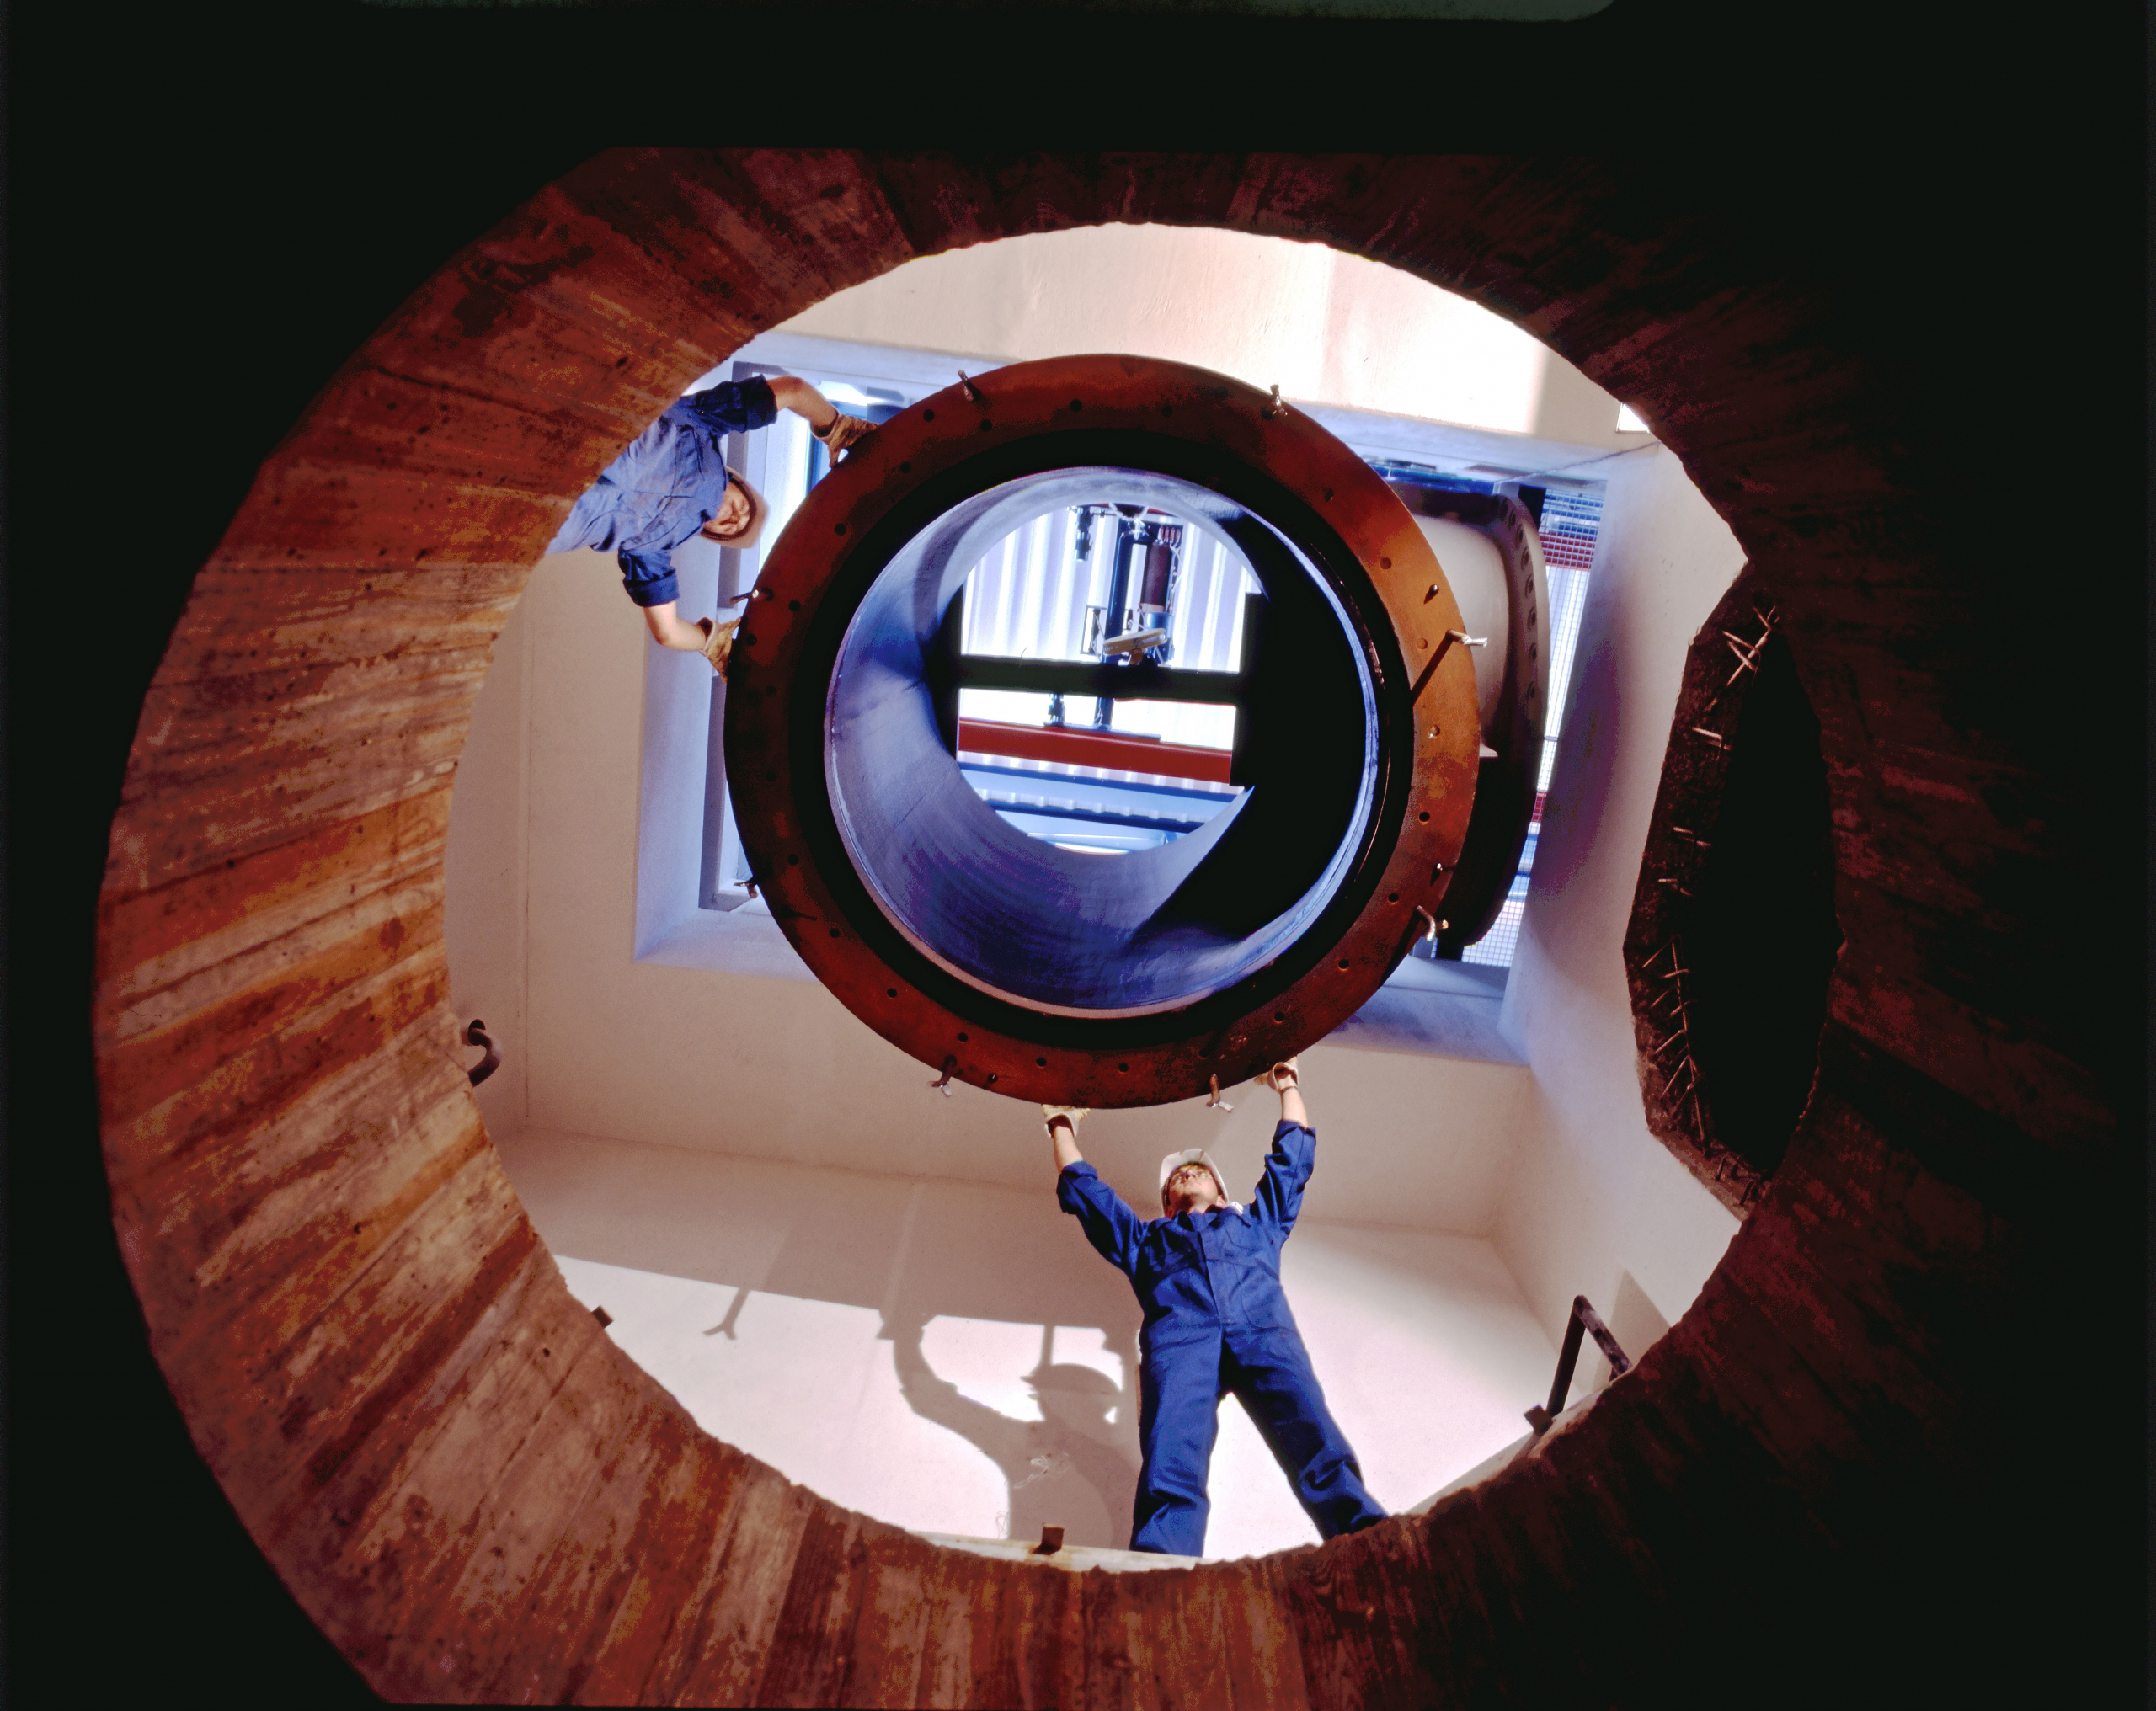 Two workers fitting together large pipe pieces